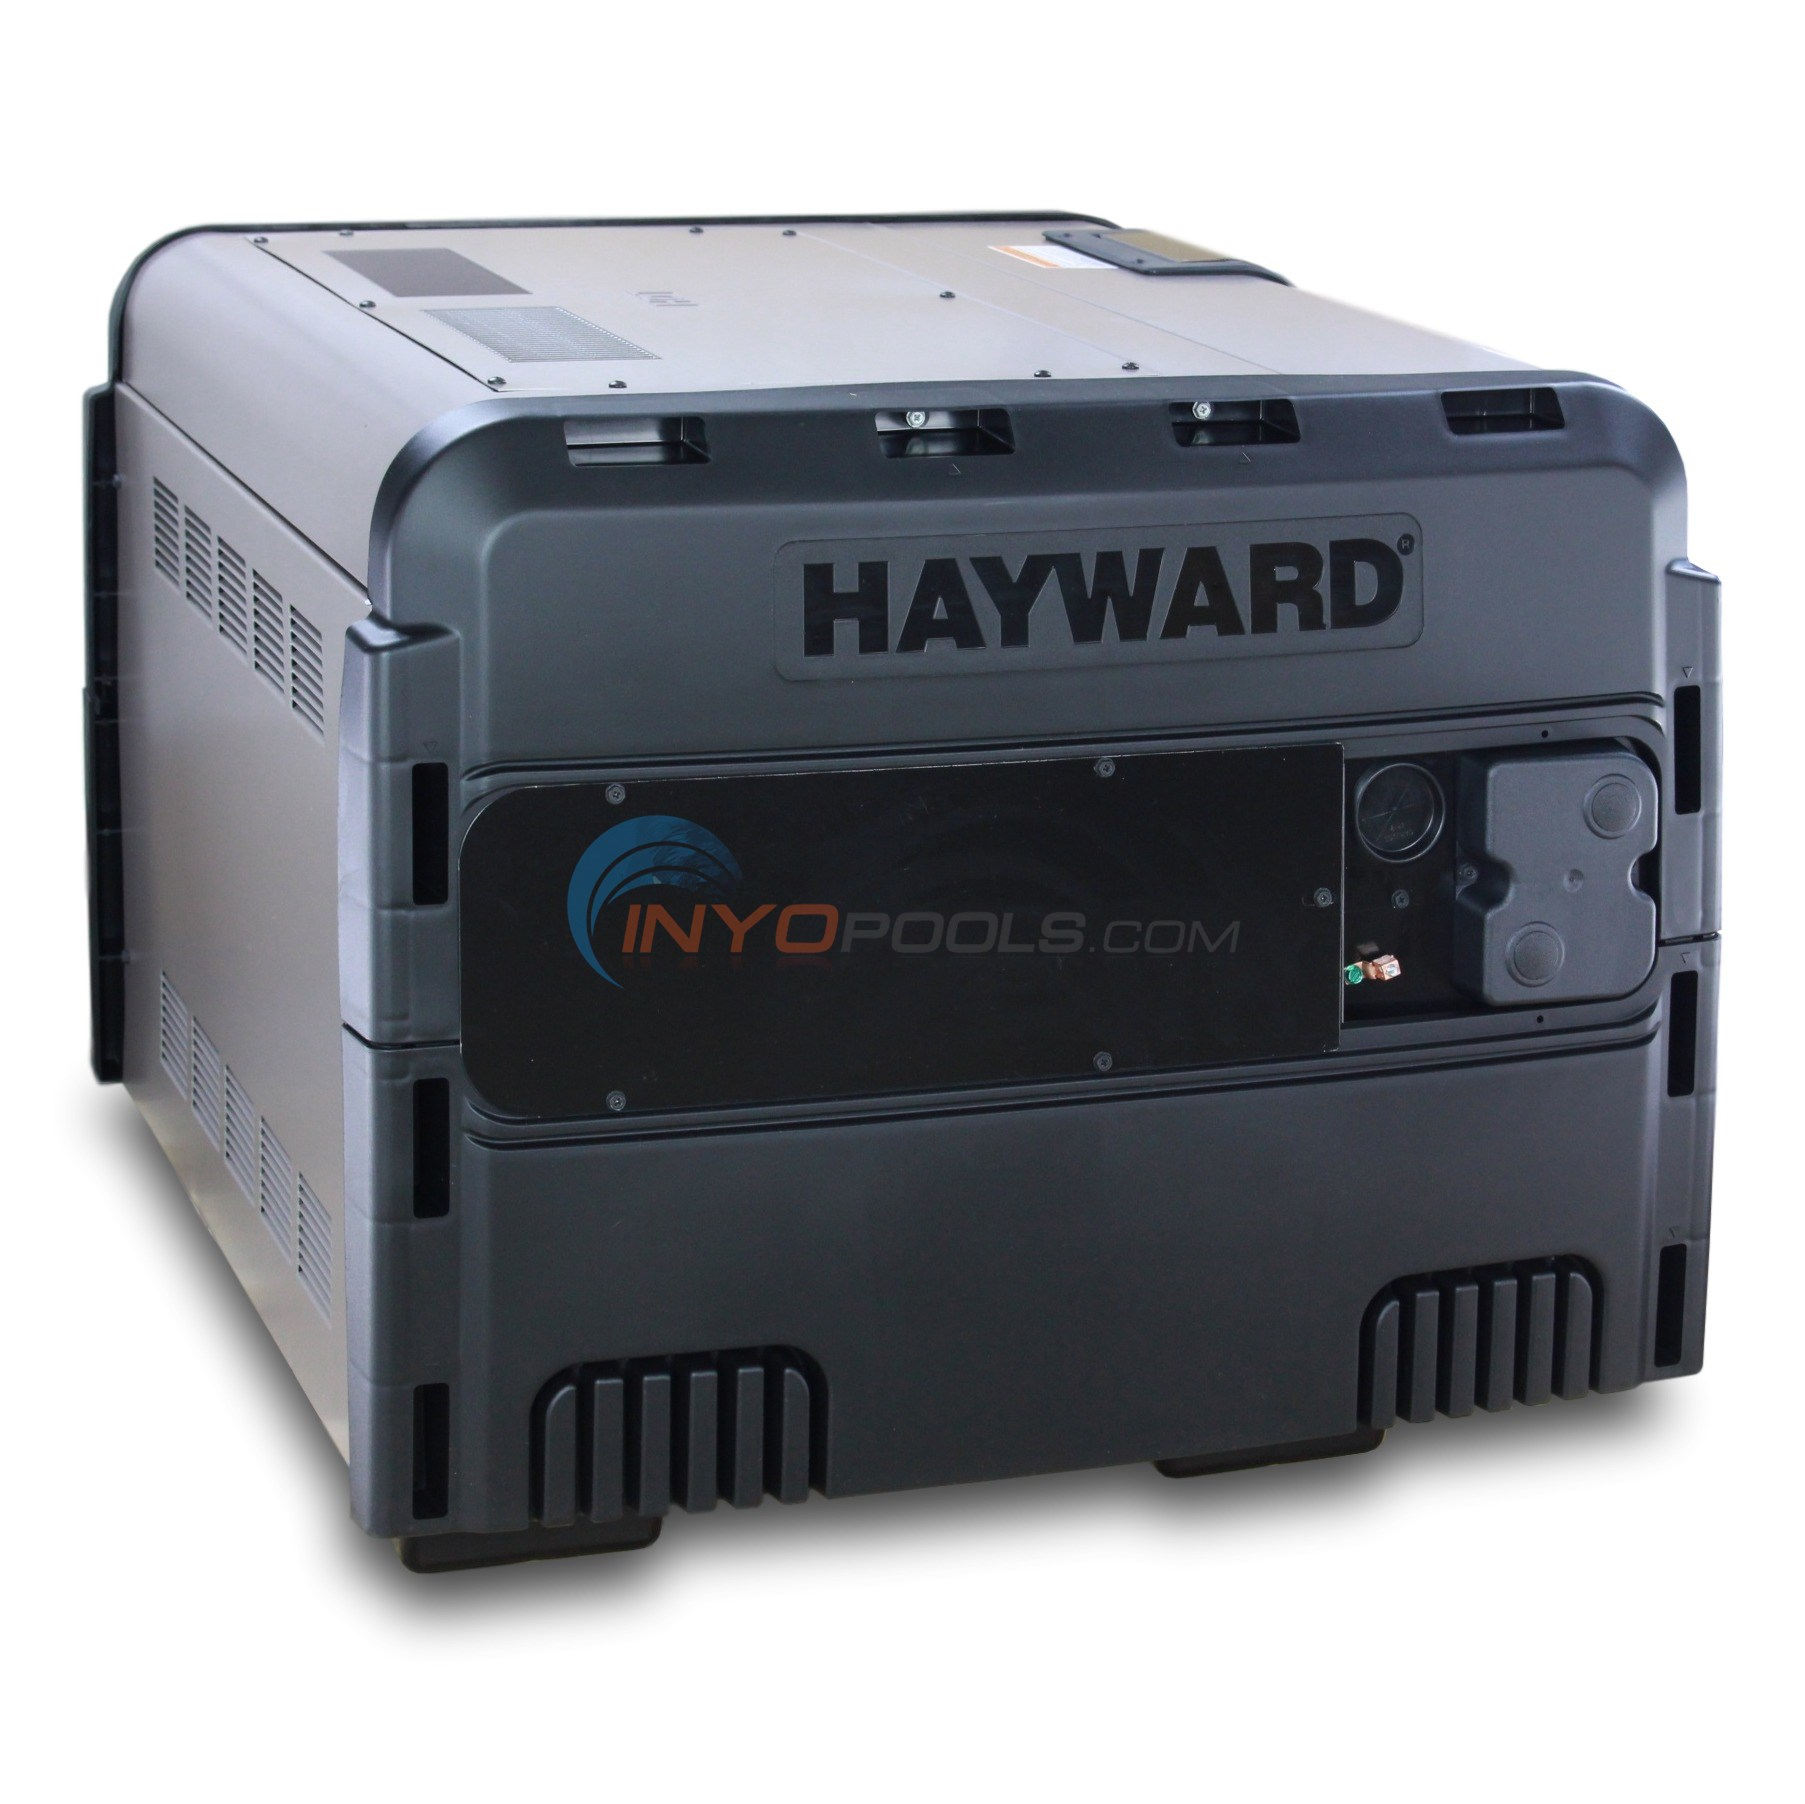 hayward h400fdn 04?format=jpg&scale=both&anchor=middlecenter&autorotate=true&mode=pad&width=650&height=650 hayward pool heater universal h series low nox 250k btu ng Hayward H250 Pool Heater and Spa at creativeand.co